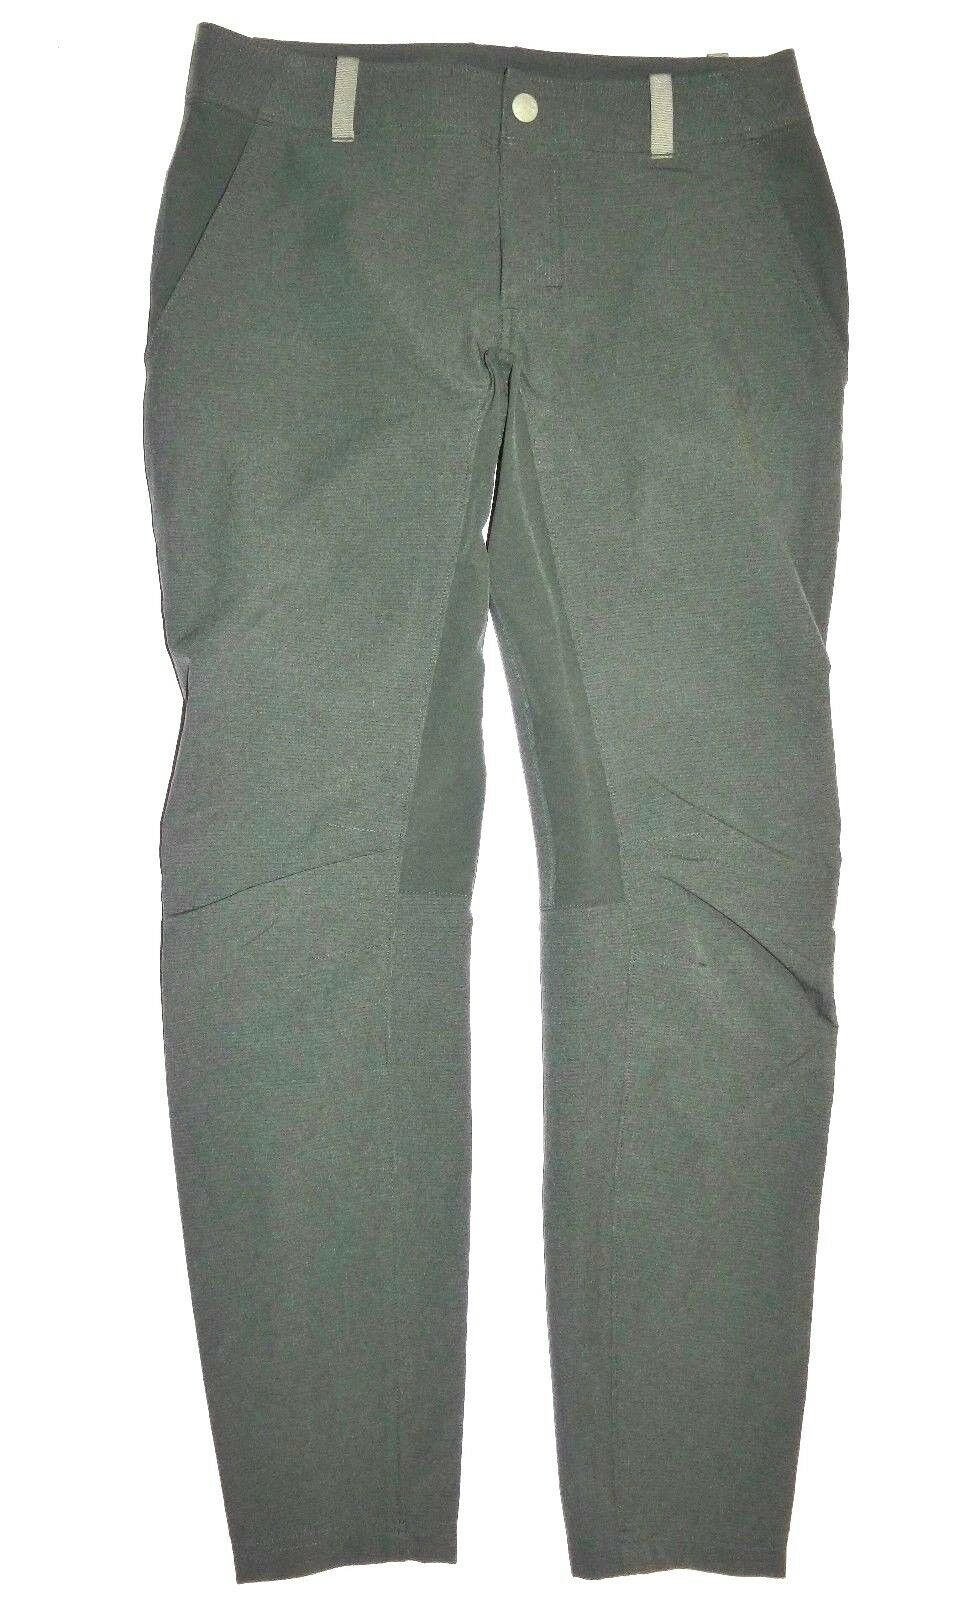 New Under Armour Damenschuhe Storm HeatGear Polyester Polyester Polyester Hiking Pants Größe 4 c28789